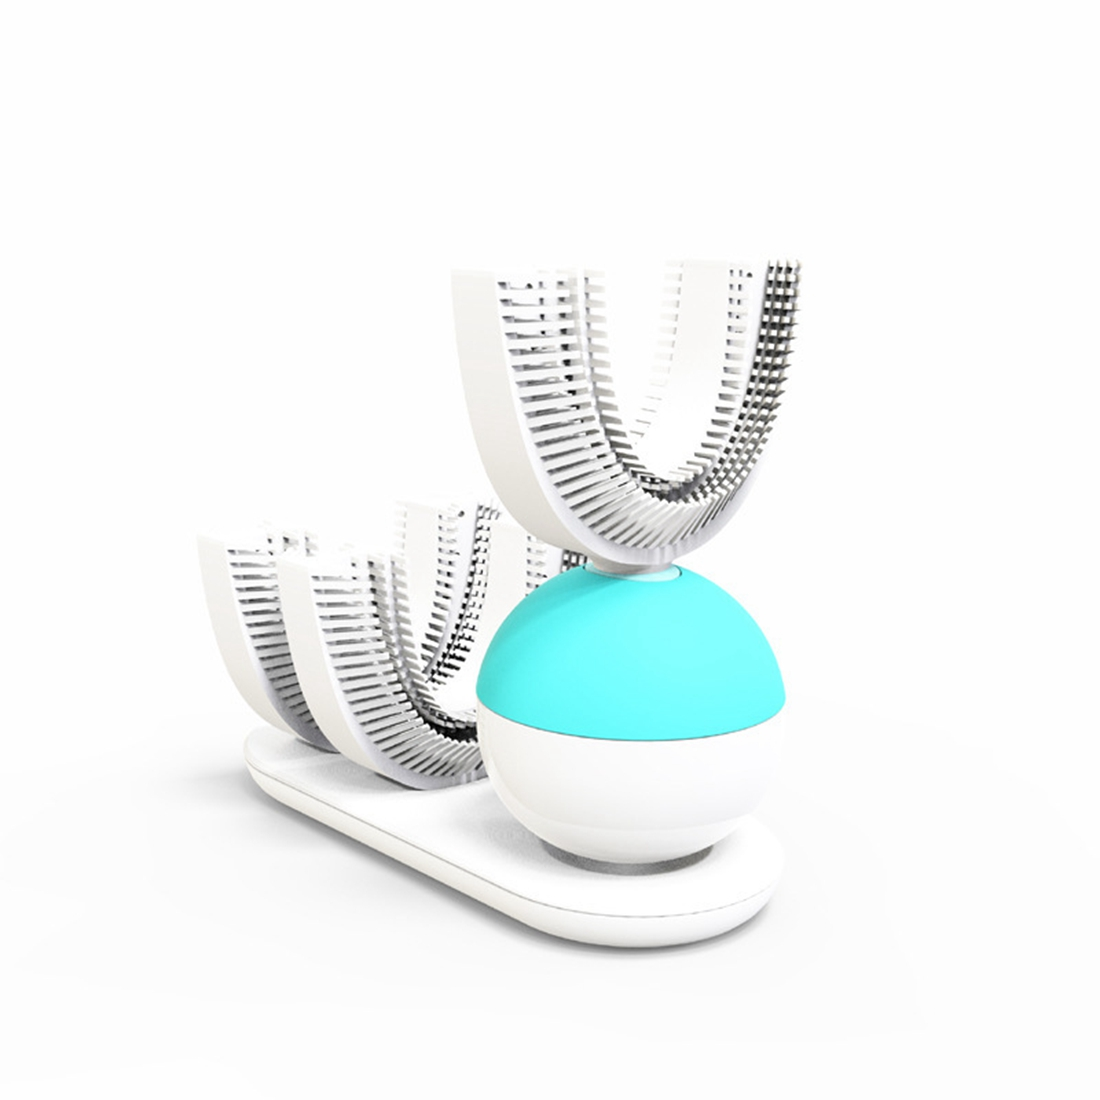 Top Sale 360 degree automatic intelligent packaged lazy toothbrush electric rapid cleaning sonic whitening rechargeable toothbTop Sale 360 degree automatic intelligent packaged lazy toothbrush electric rapid cleaning sonic whitening rechargeable toothb